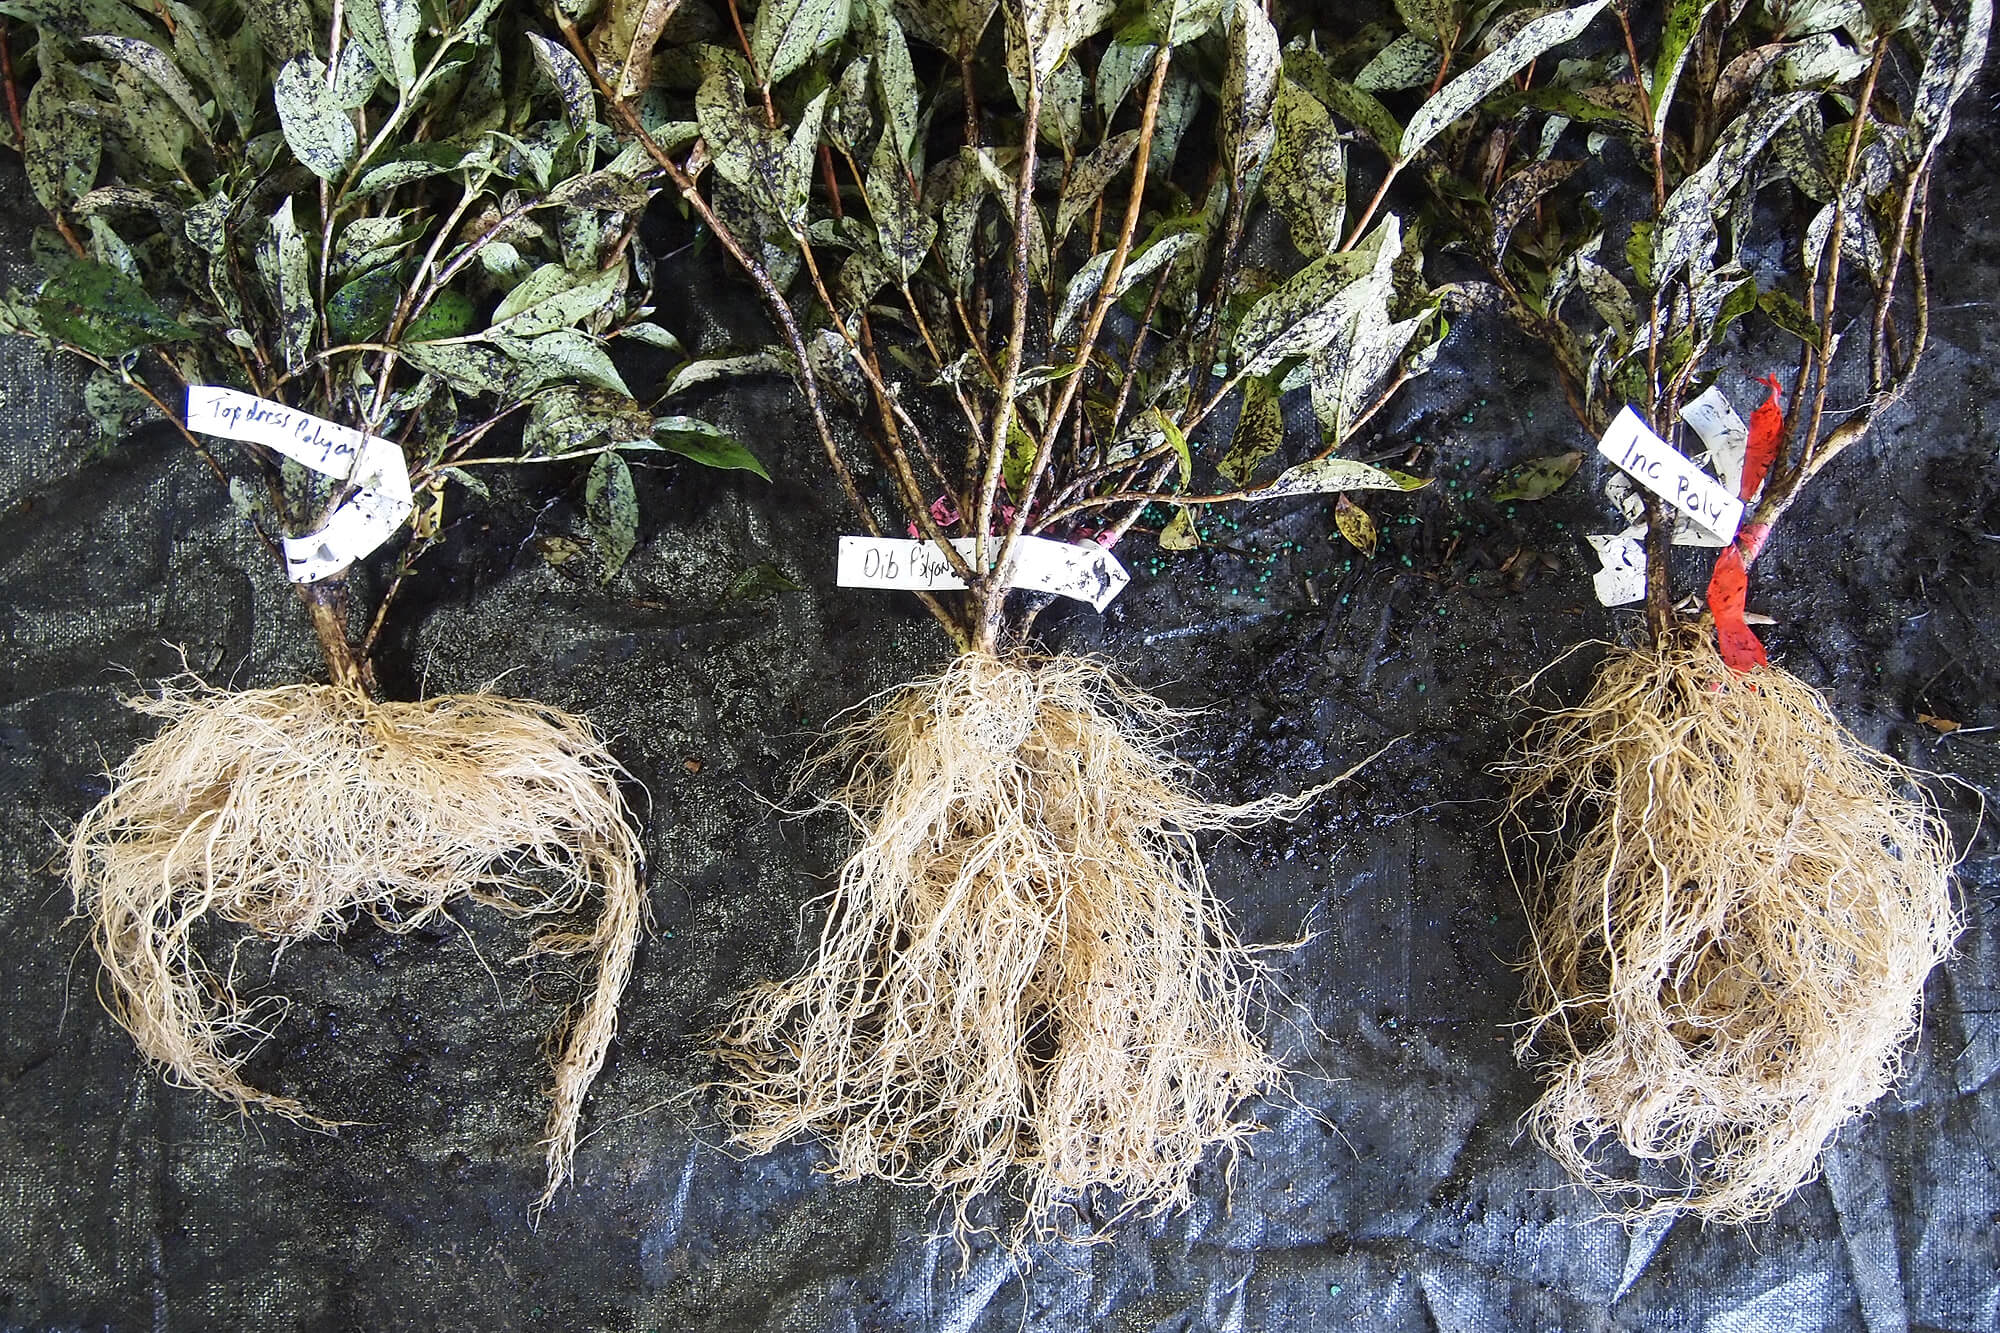 three various samples of plant roots for comparison